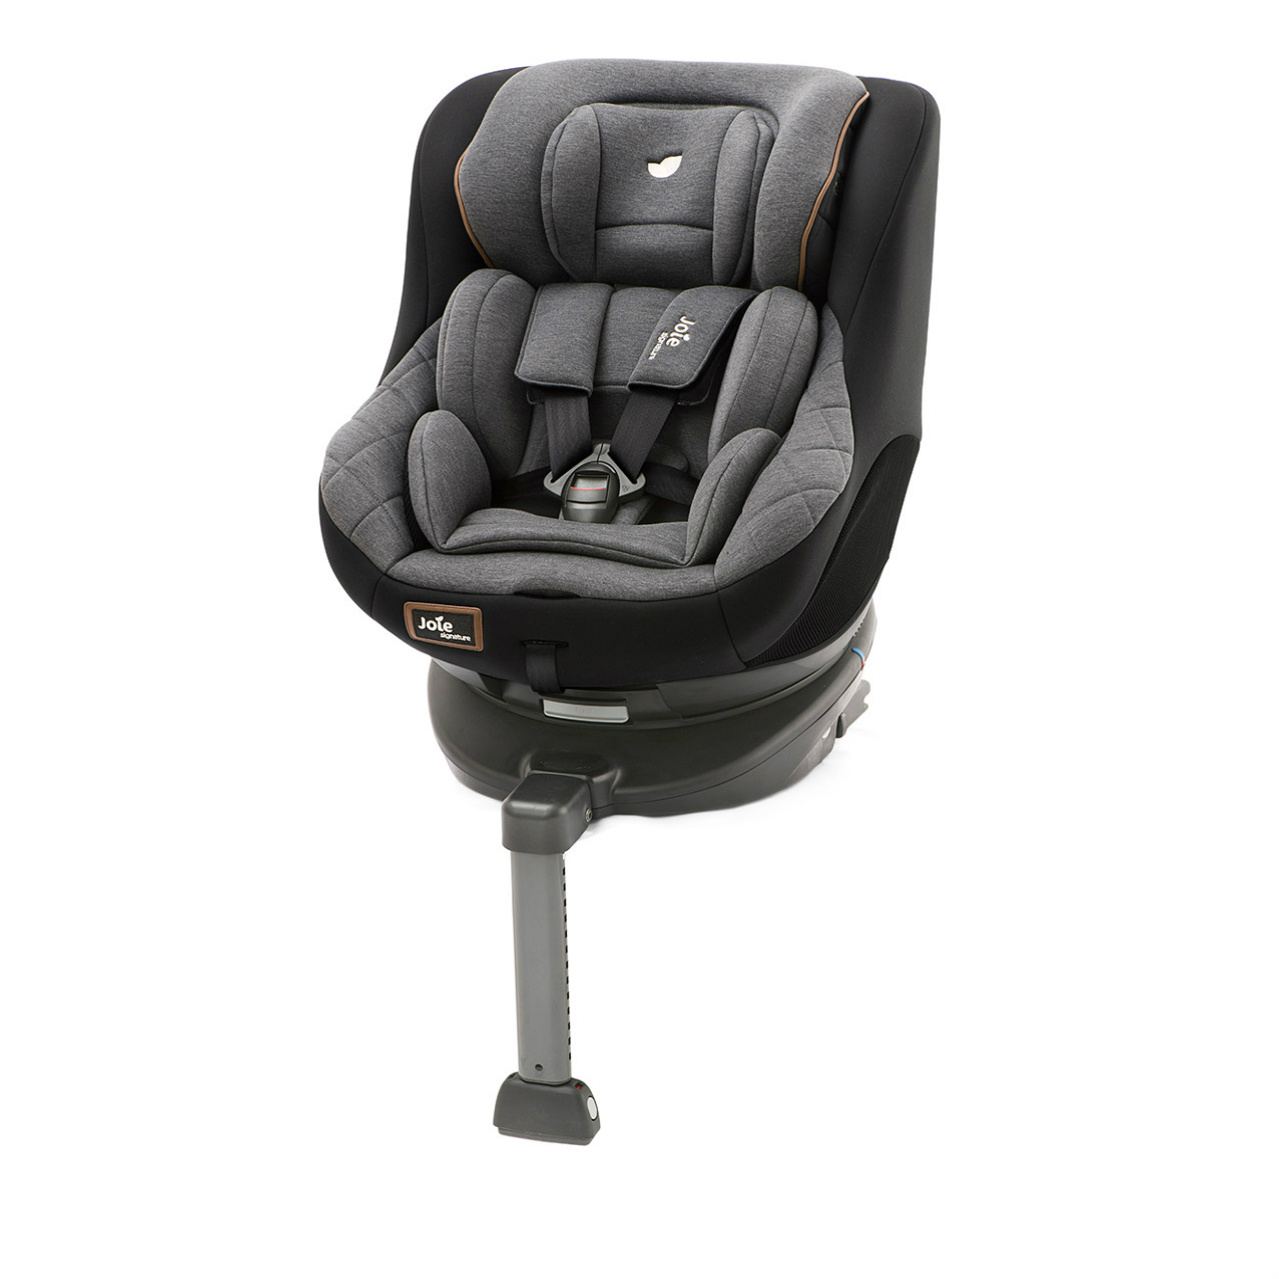 Joie 360 Spin Signature Edition Extended Rearward Facing Isofix Car Seat 0-4 Years